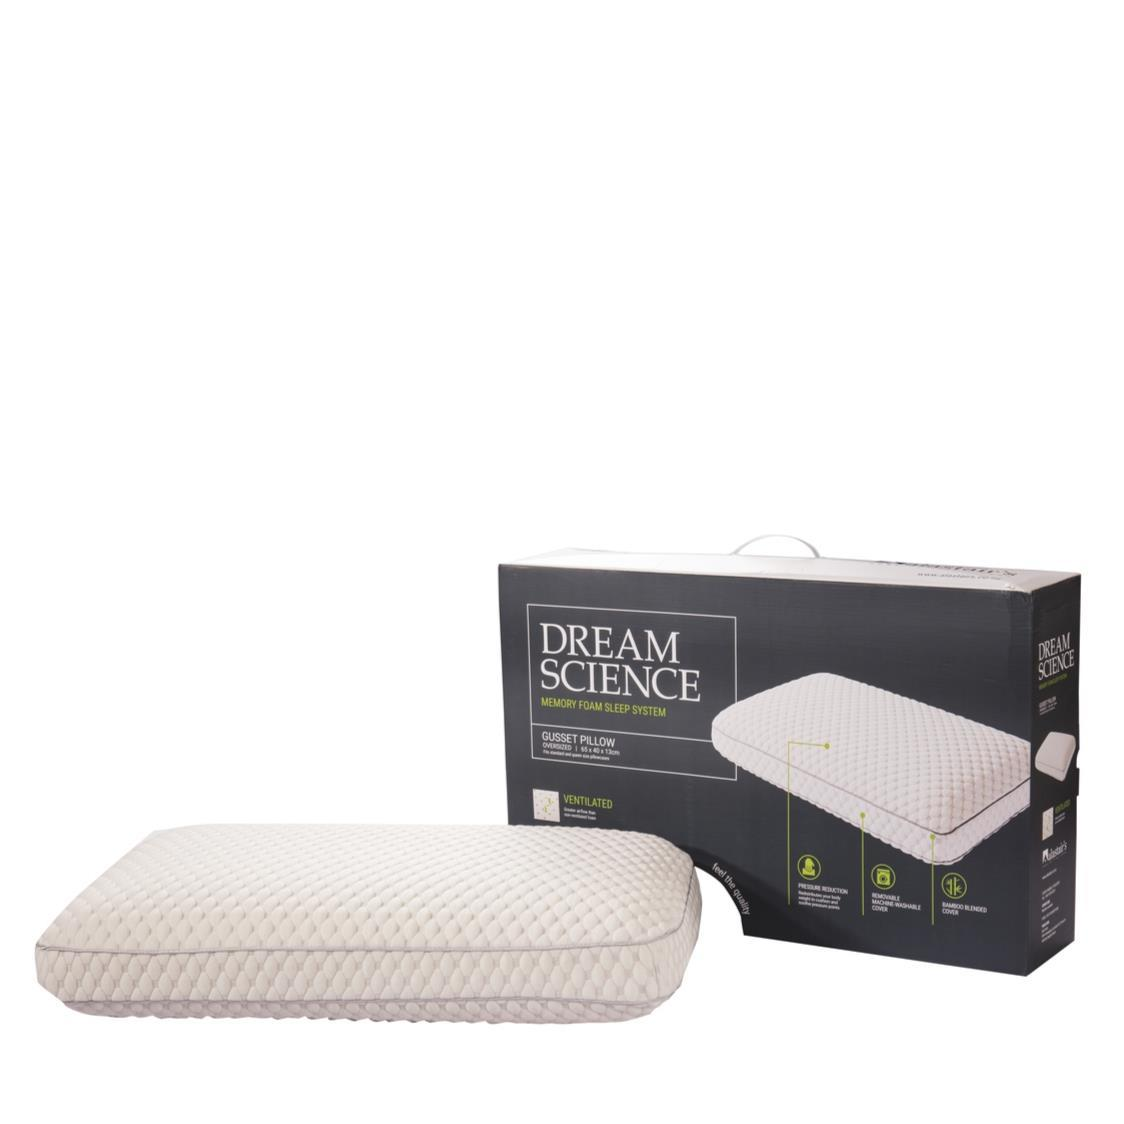 Dream Science Ventilated Memory Foam Gusset Pillow